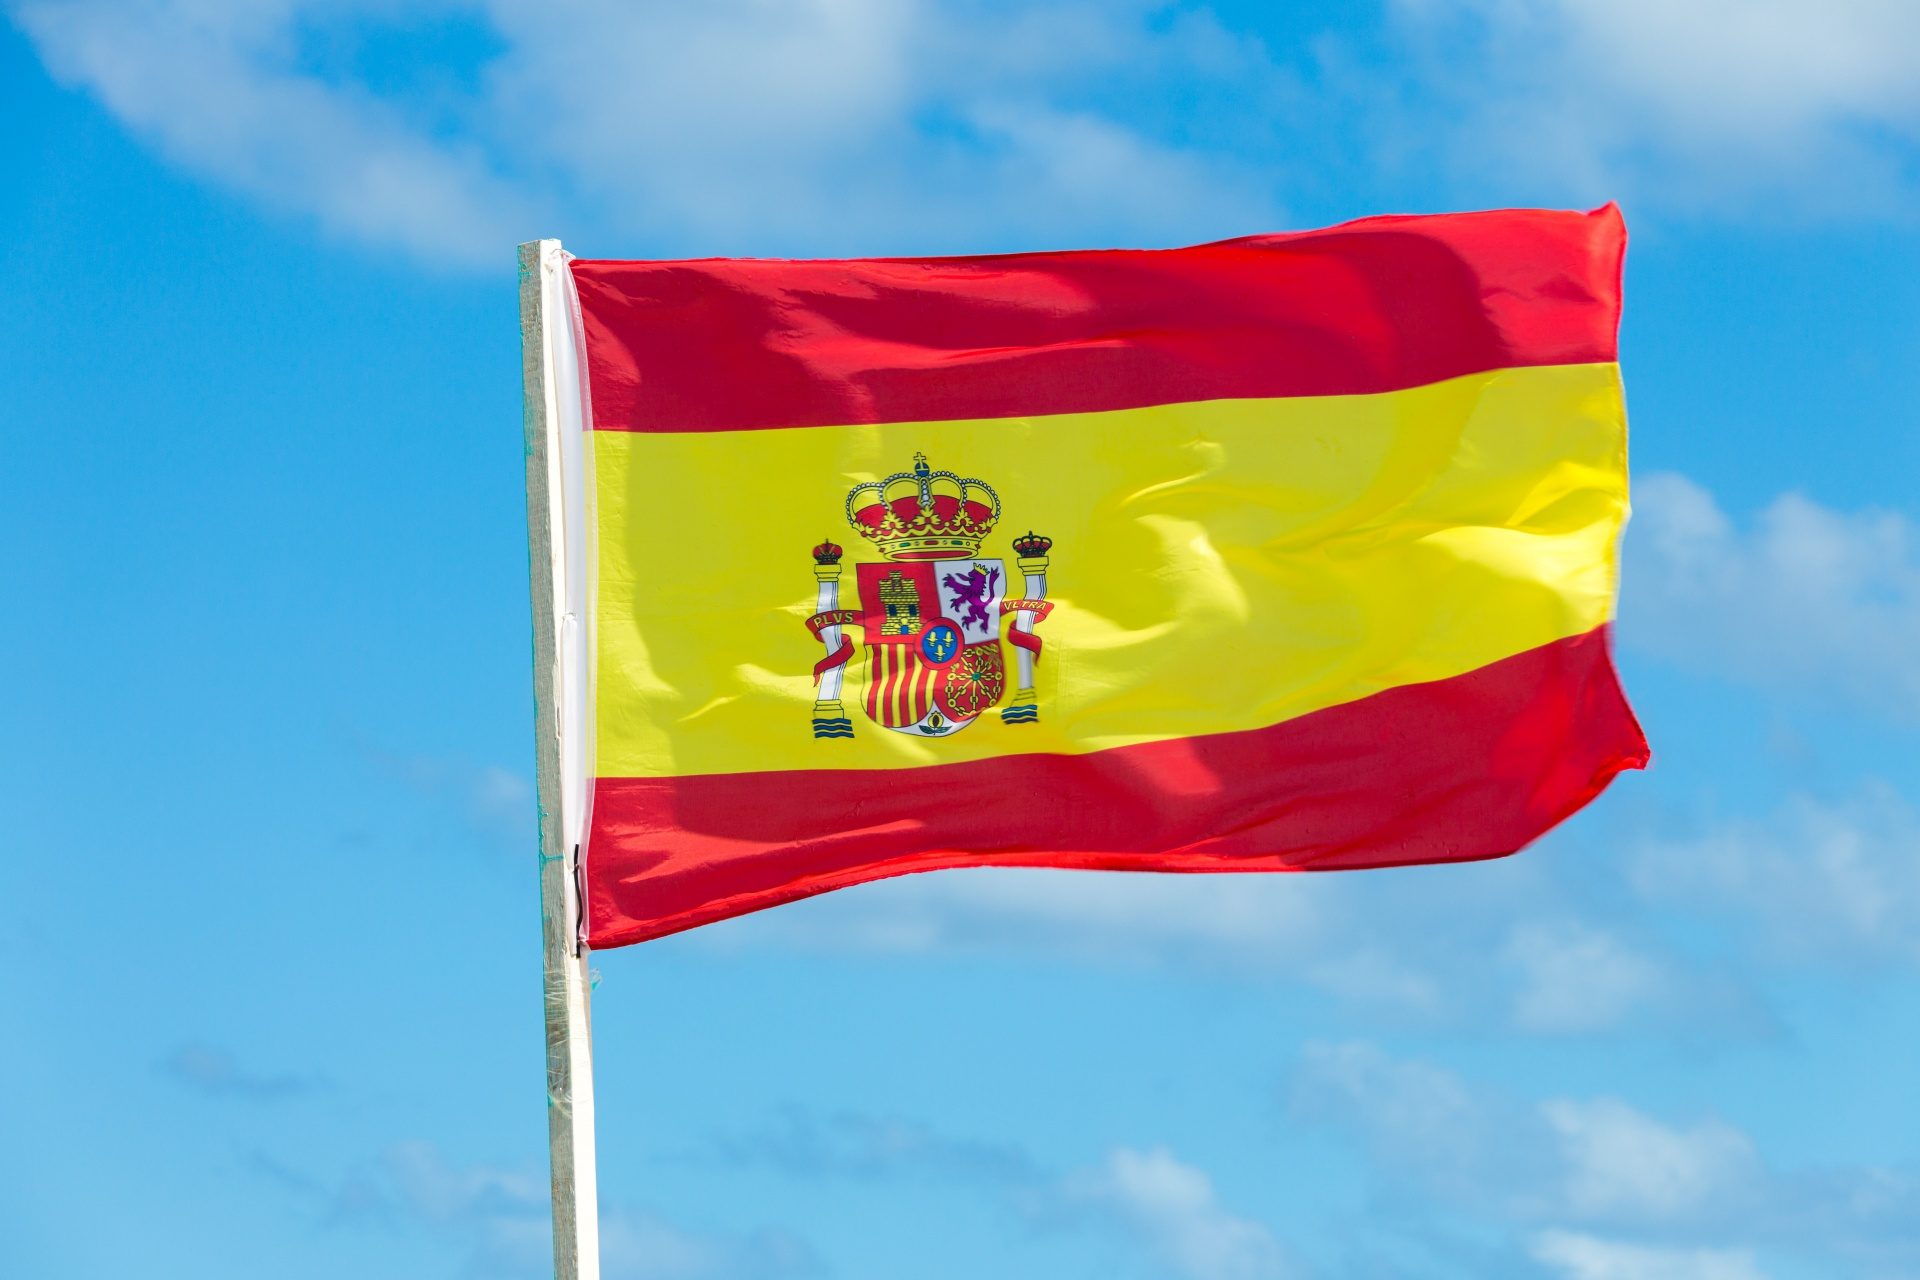 spanish-flag-1464084072Hvb.jpg